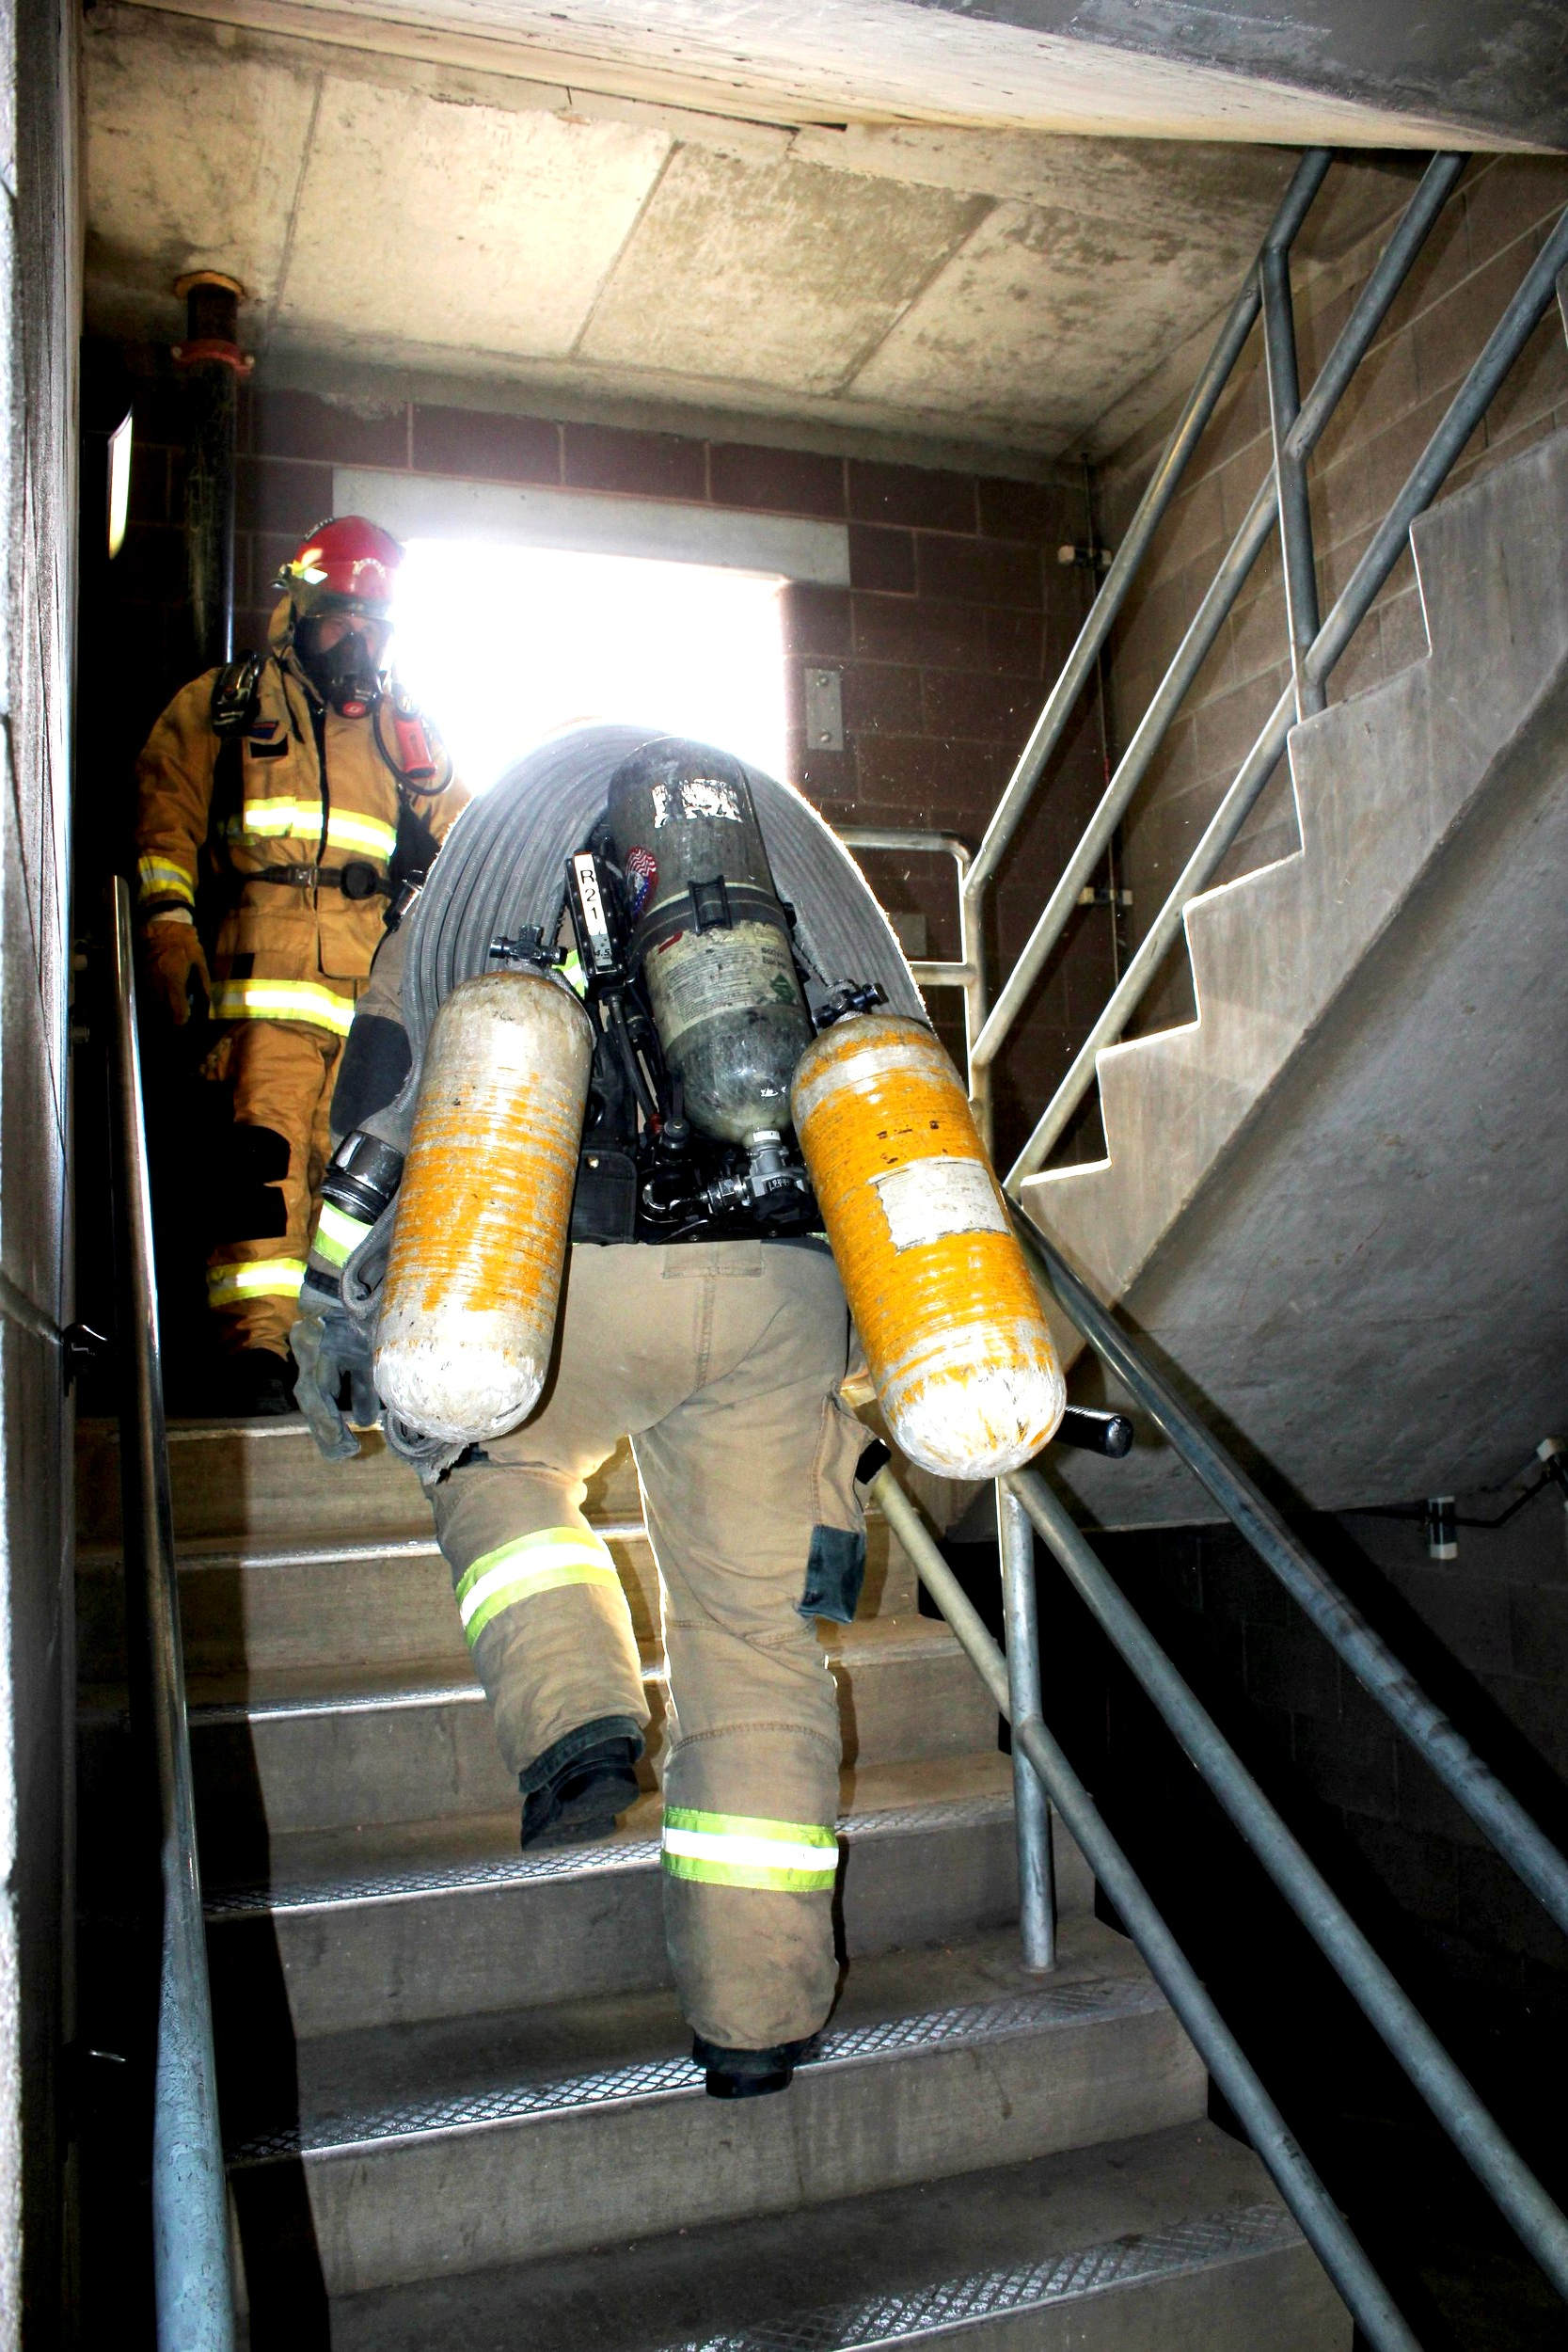 Do you have what it takes to be in the fire service? - As mentors in the Valley Hispanic Bomberos, we dedicate our time and knwlege in teaching to those who wantes to be a firefighter. They are exposed to firefighter workouts and ride-a-longs to see first hand what it takes.Learn more ➝